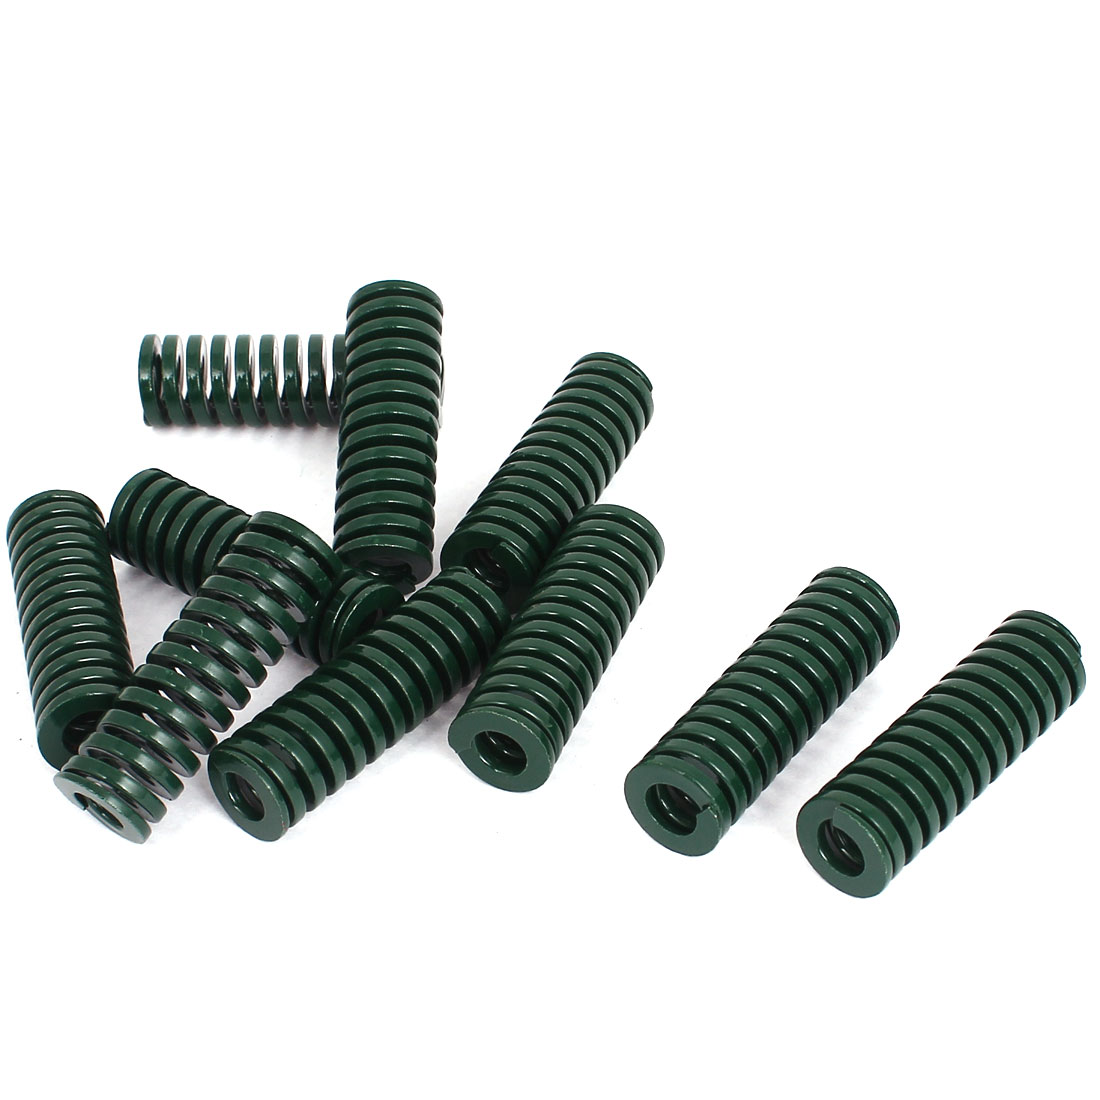 16mm OD 50mm Long Heavy Load Stamping Compression Mold Die Spring Green 10pcs